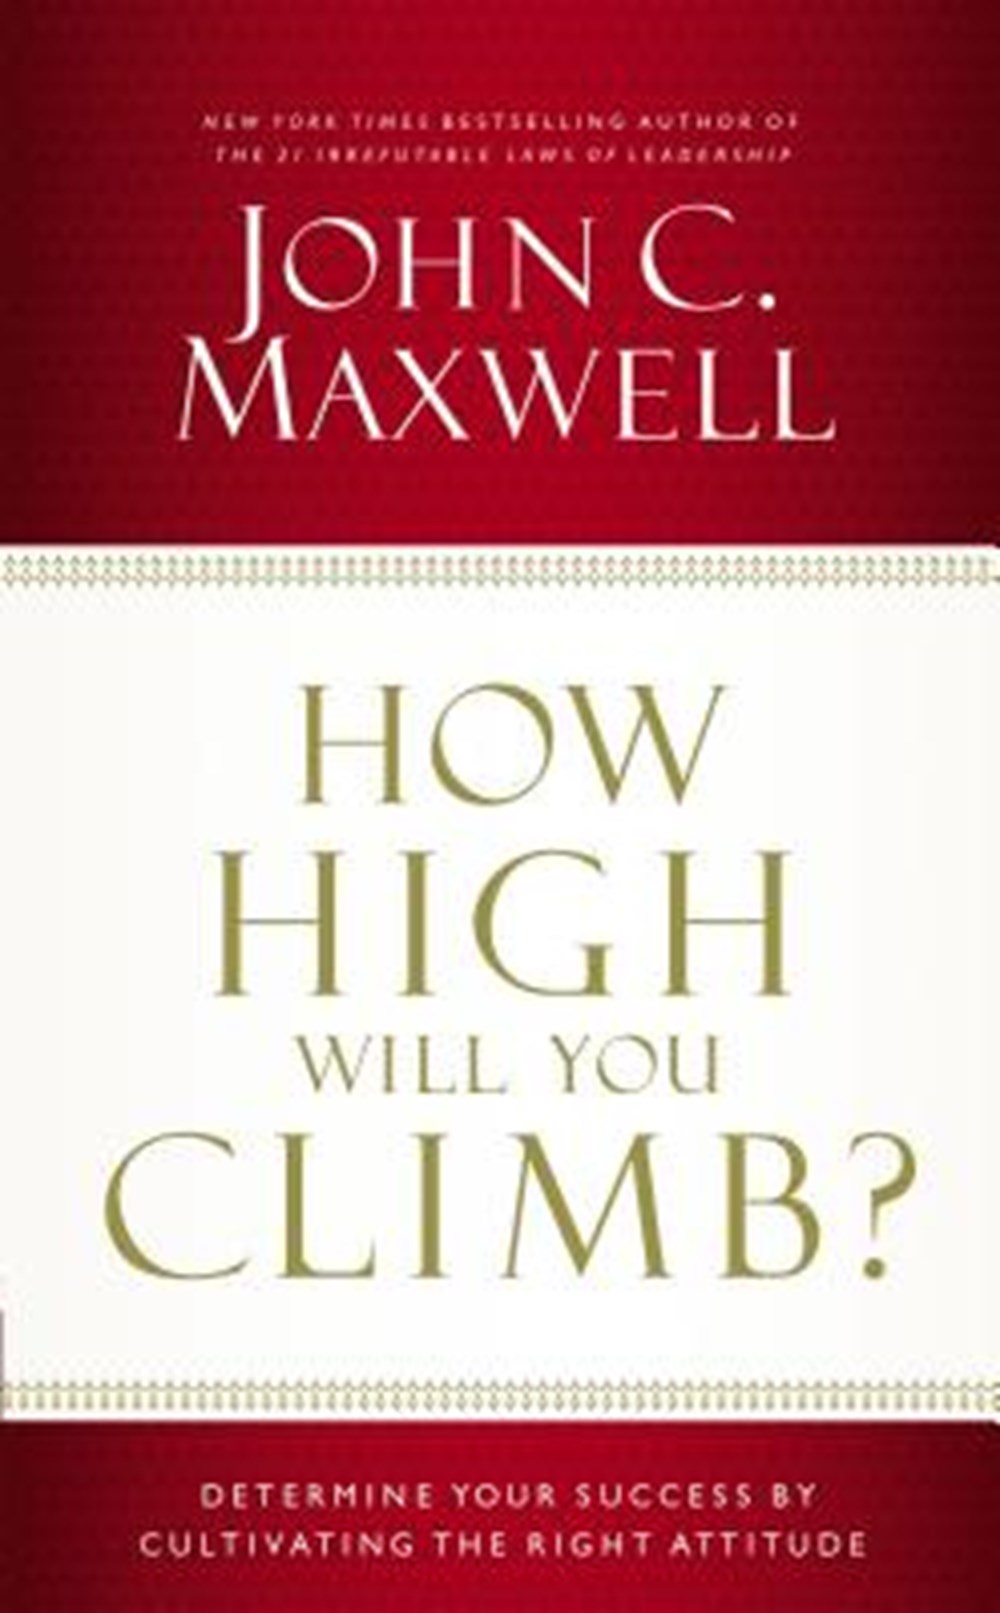 How High Will You Climb? Determine Your Success by Cultivating the Right Attitude